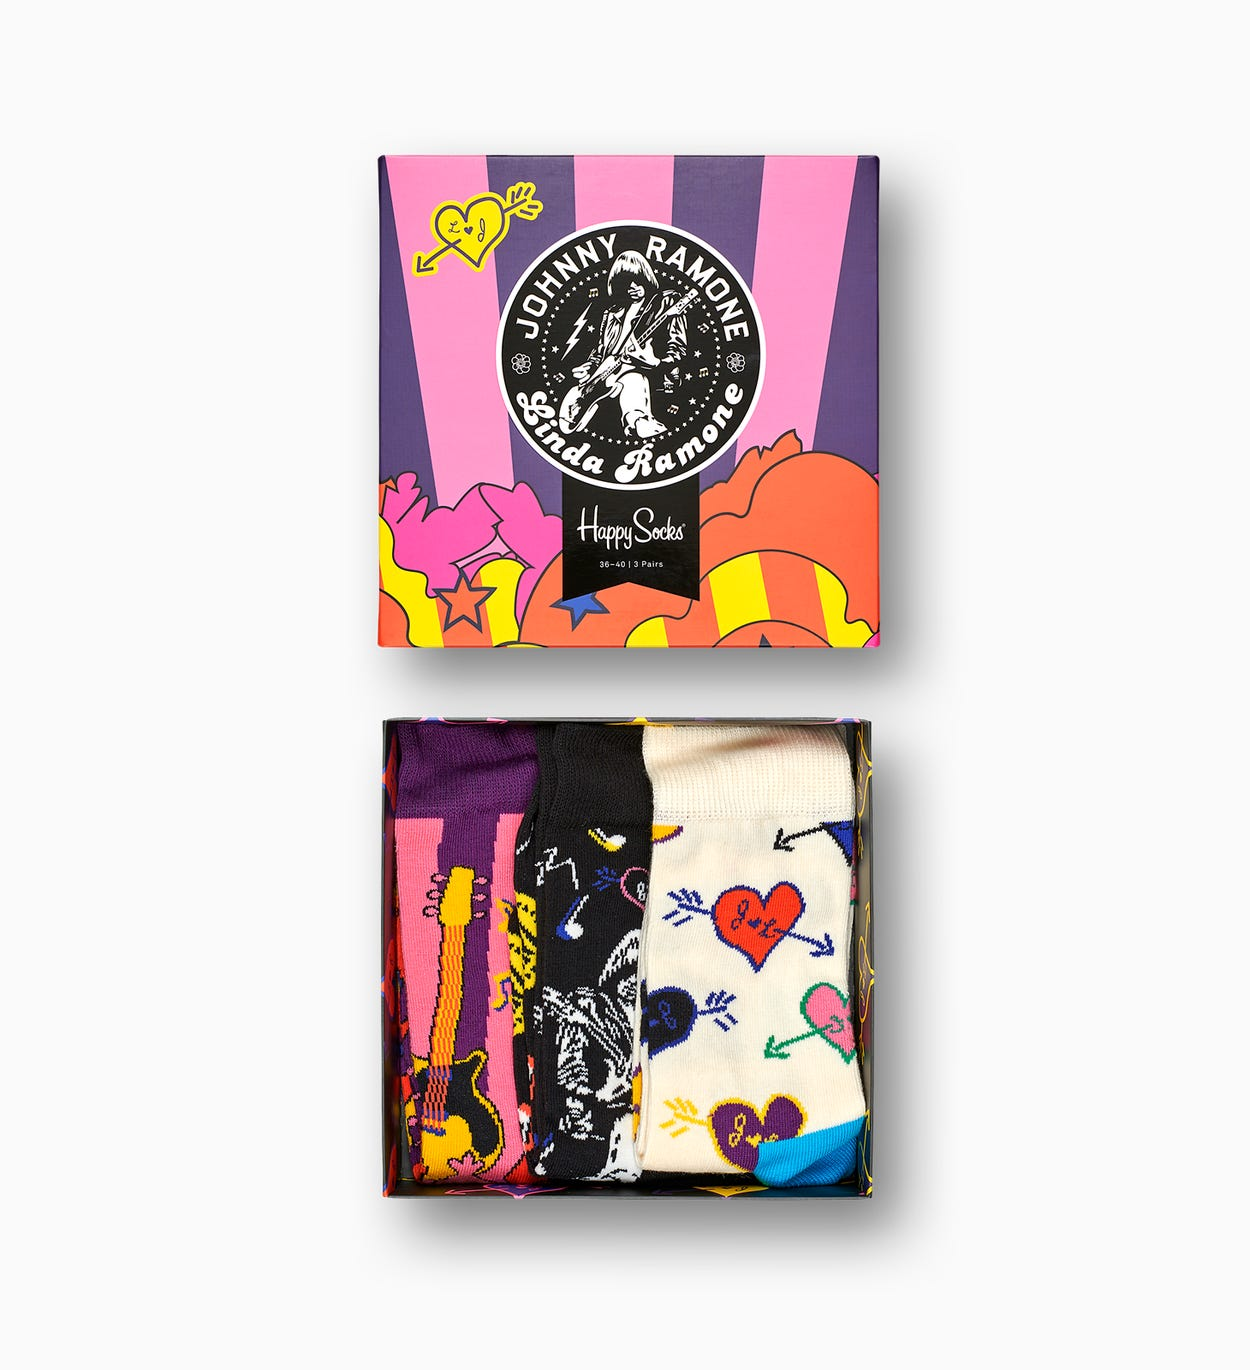 Linda And Johnny Ramone Gift Box, Pink | Happy Socks